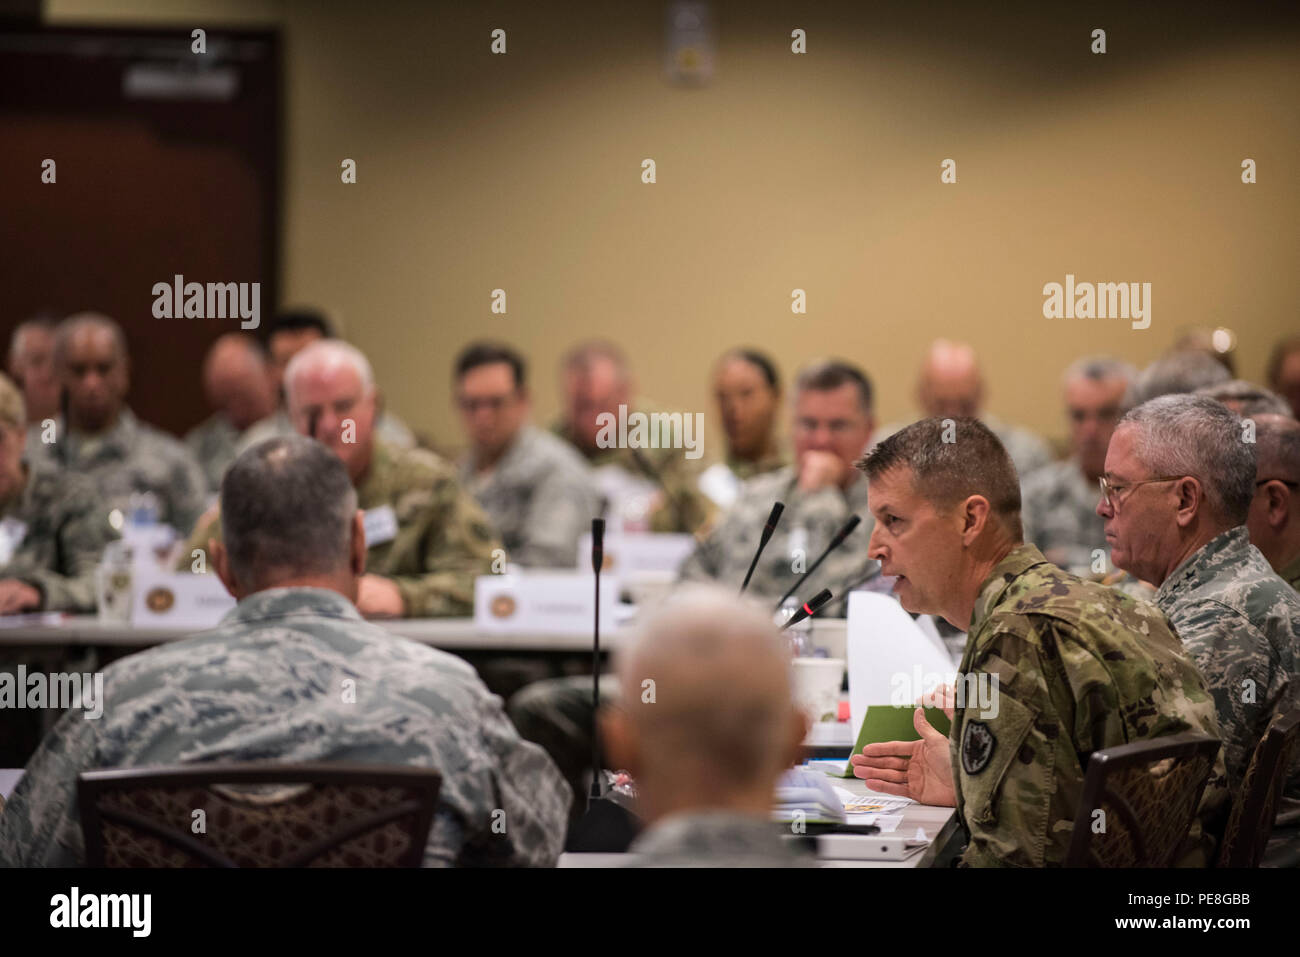 Army Lt. Gen. Daniel Hokanson, deputy commander, U.S. Northern Command, is at the National Guard Bureau Senior Leadership Conference, in Colorado Springs, Colo., Oct. 27, 2015. (U.S. Army National Guard photo by Staff Sgt. Adam Fischman) (Released) Stock Photo